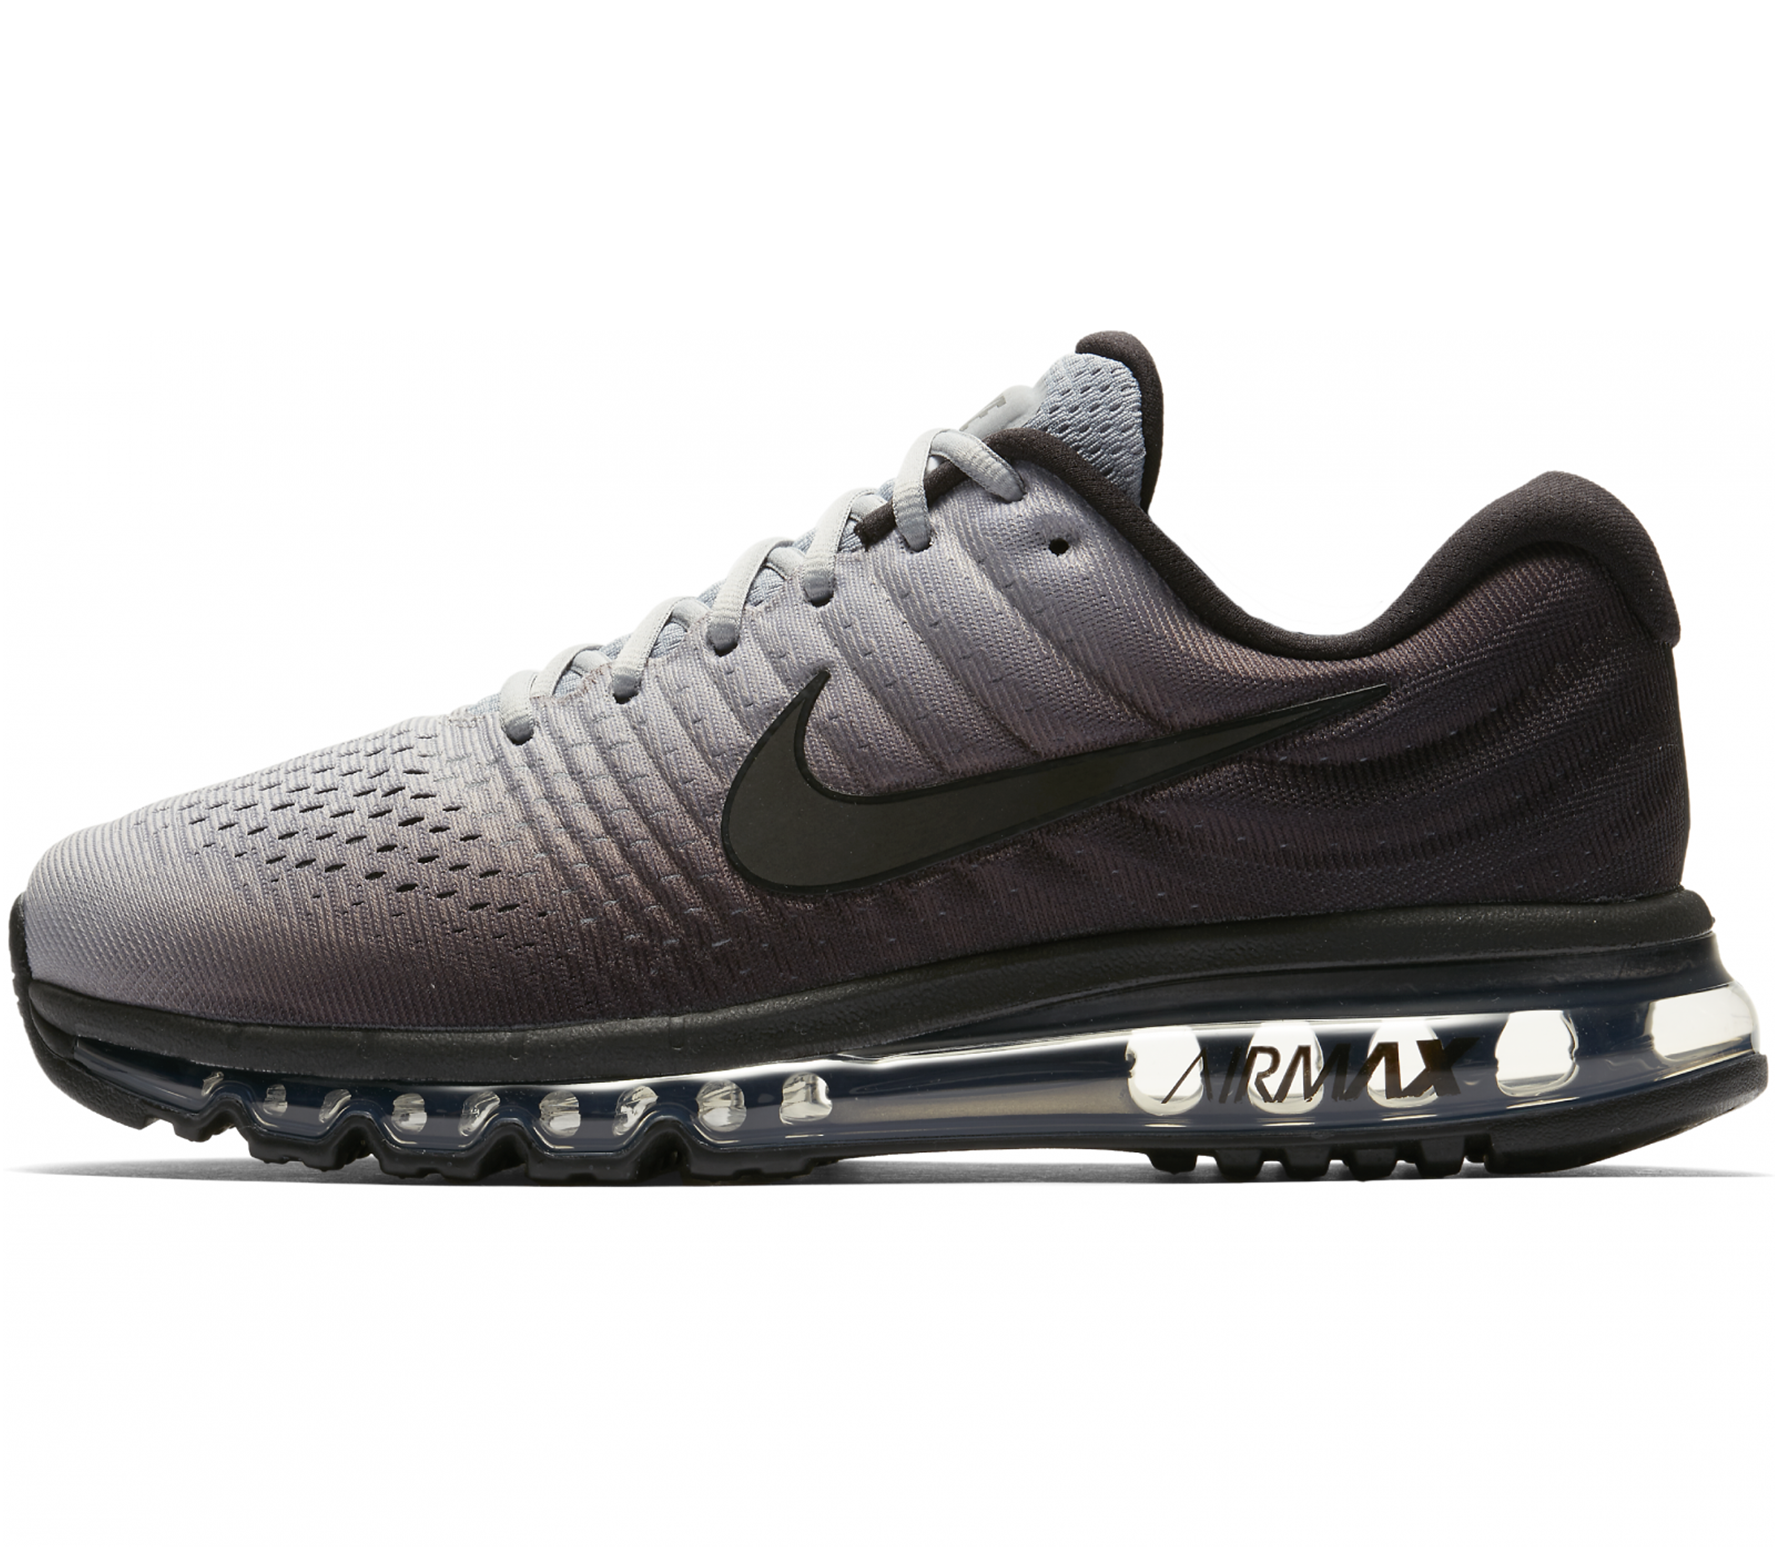 huge selection of 139e1 1982e Nike - Air Max 2017 chaussures de running pour hommes (gris)